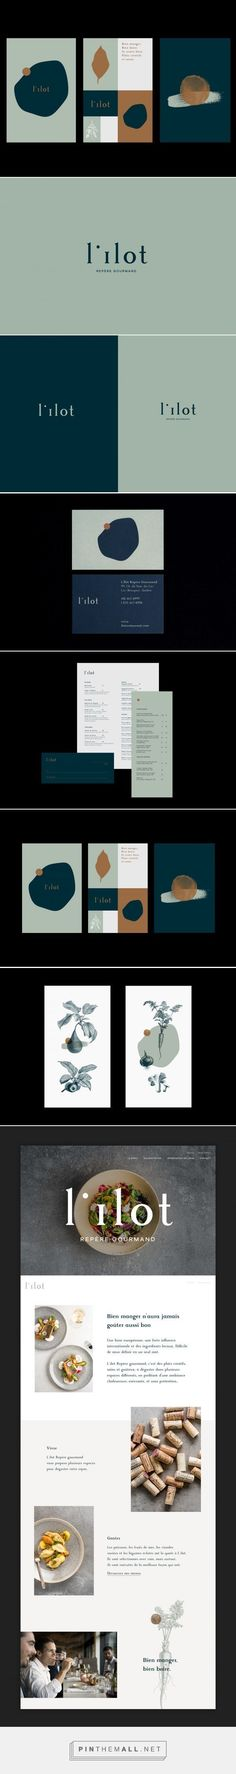 Branding board and complete brand identity for a modern and arty brand that is colorful, yet minimalist. Blue and mint green combined to a color palette that looks professional and functional with a p - My Design Ideas 2019 Corporate Design, Brand Identity Design, Graphic Design Branding, Modern Graphic Design, Corporate Identity, Visual Identity, Web Design, Slow Design, Fashion Logo Design